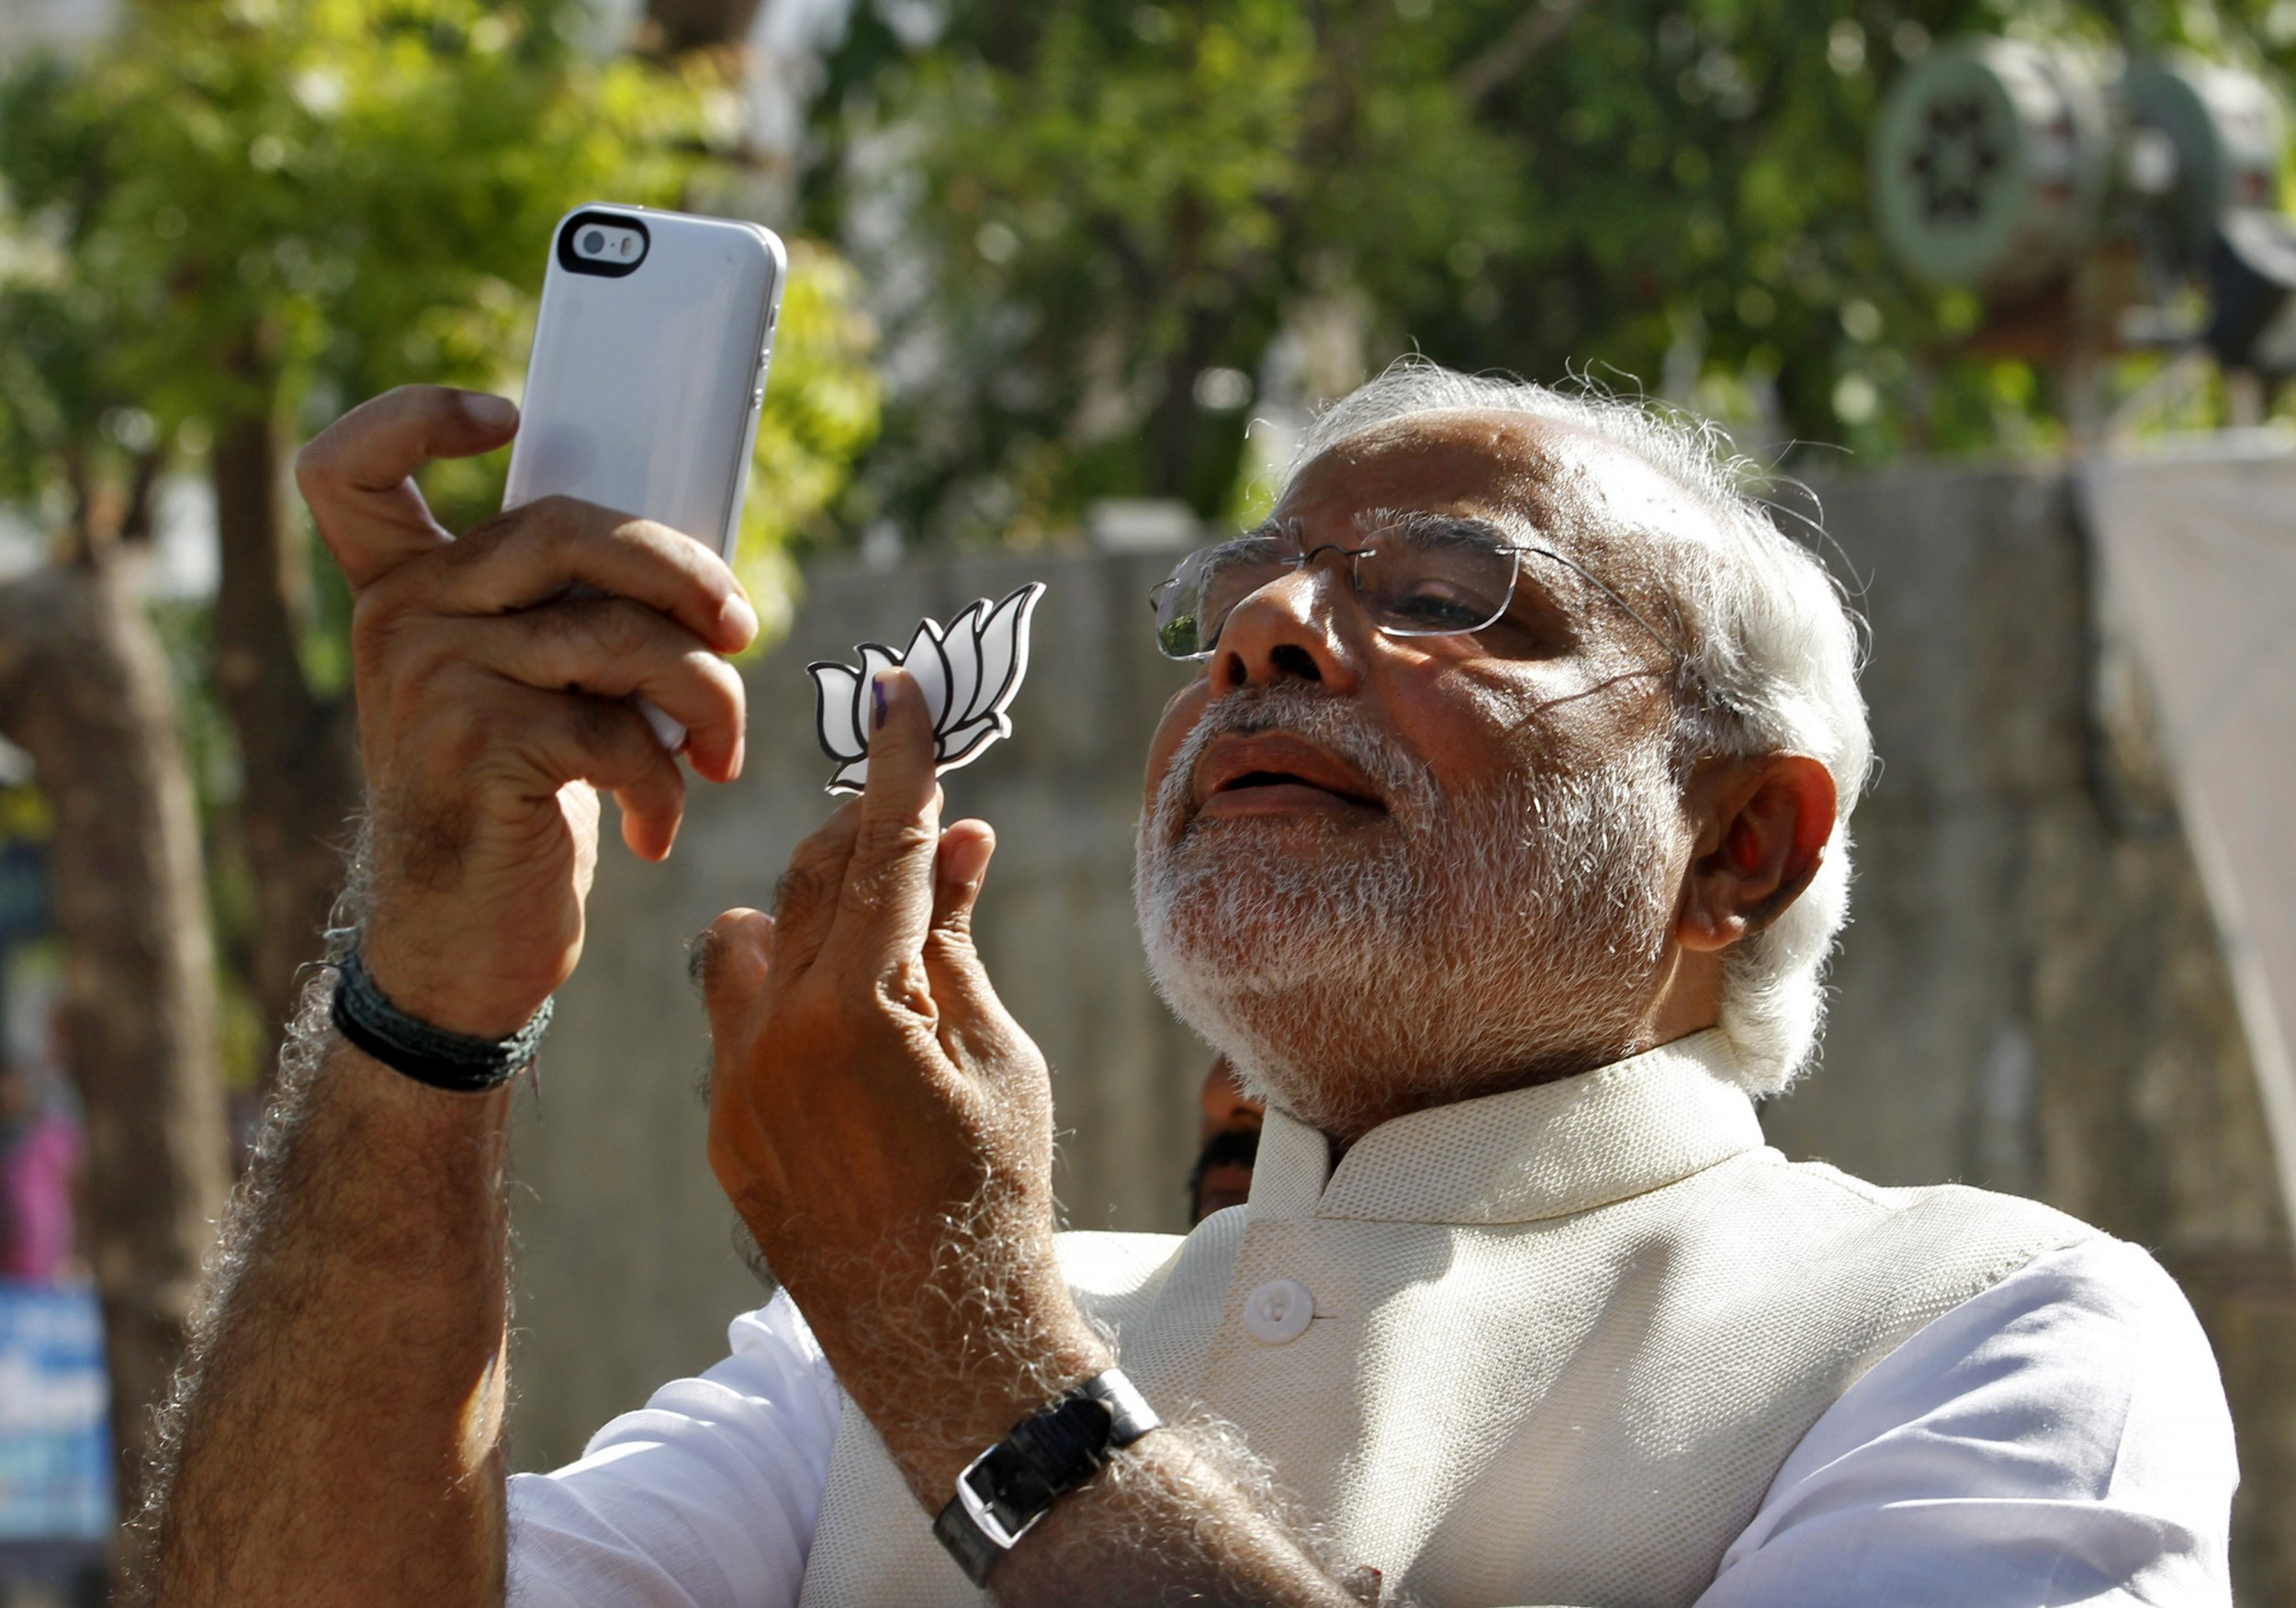 Modi poses for a selfie